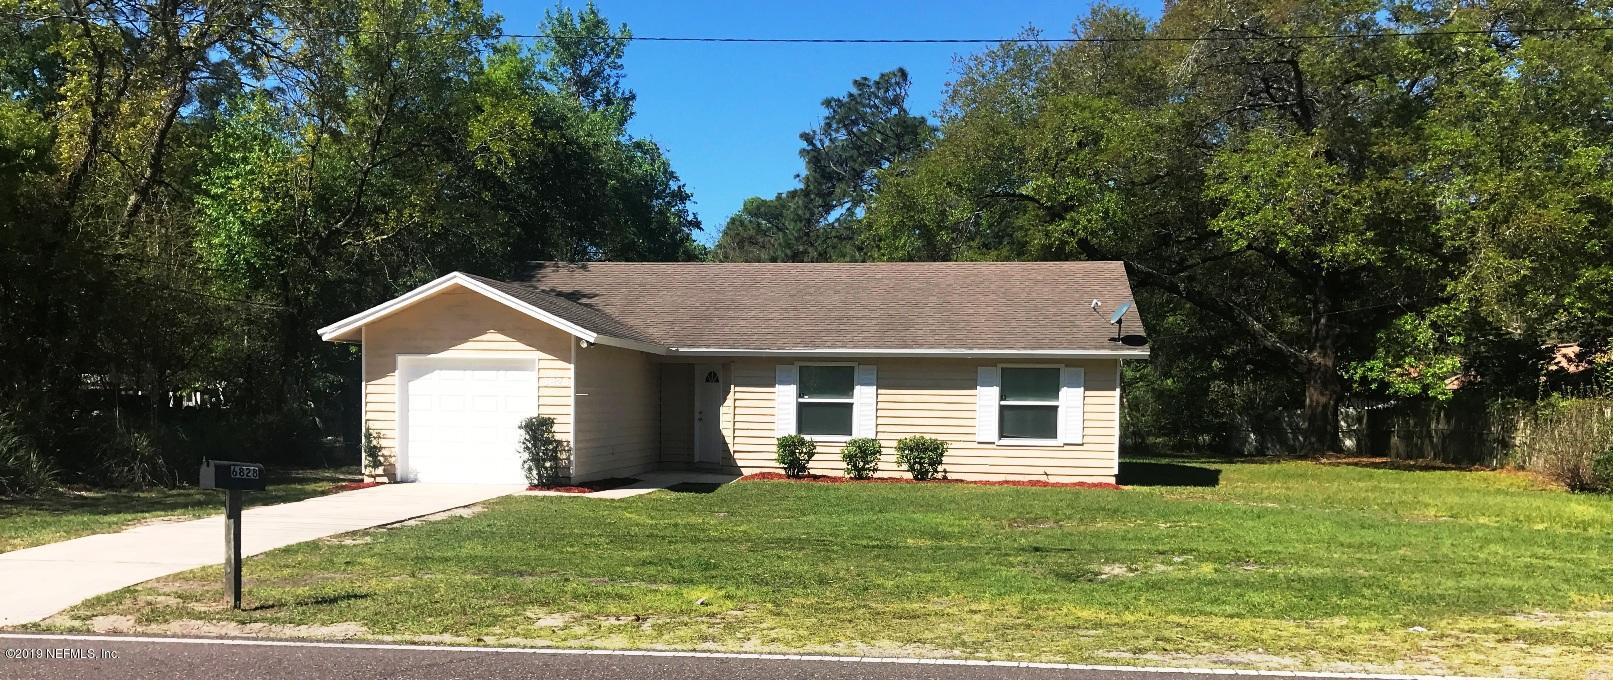 Photo of 6828 RICKER, JACKSONVILLE, FL 32244